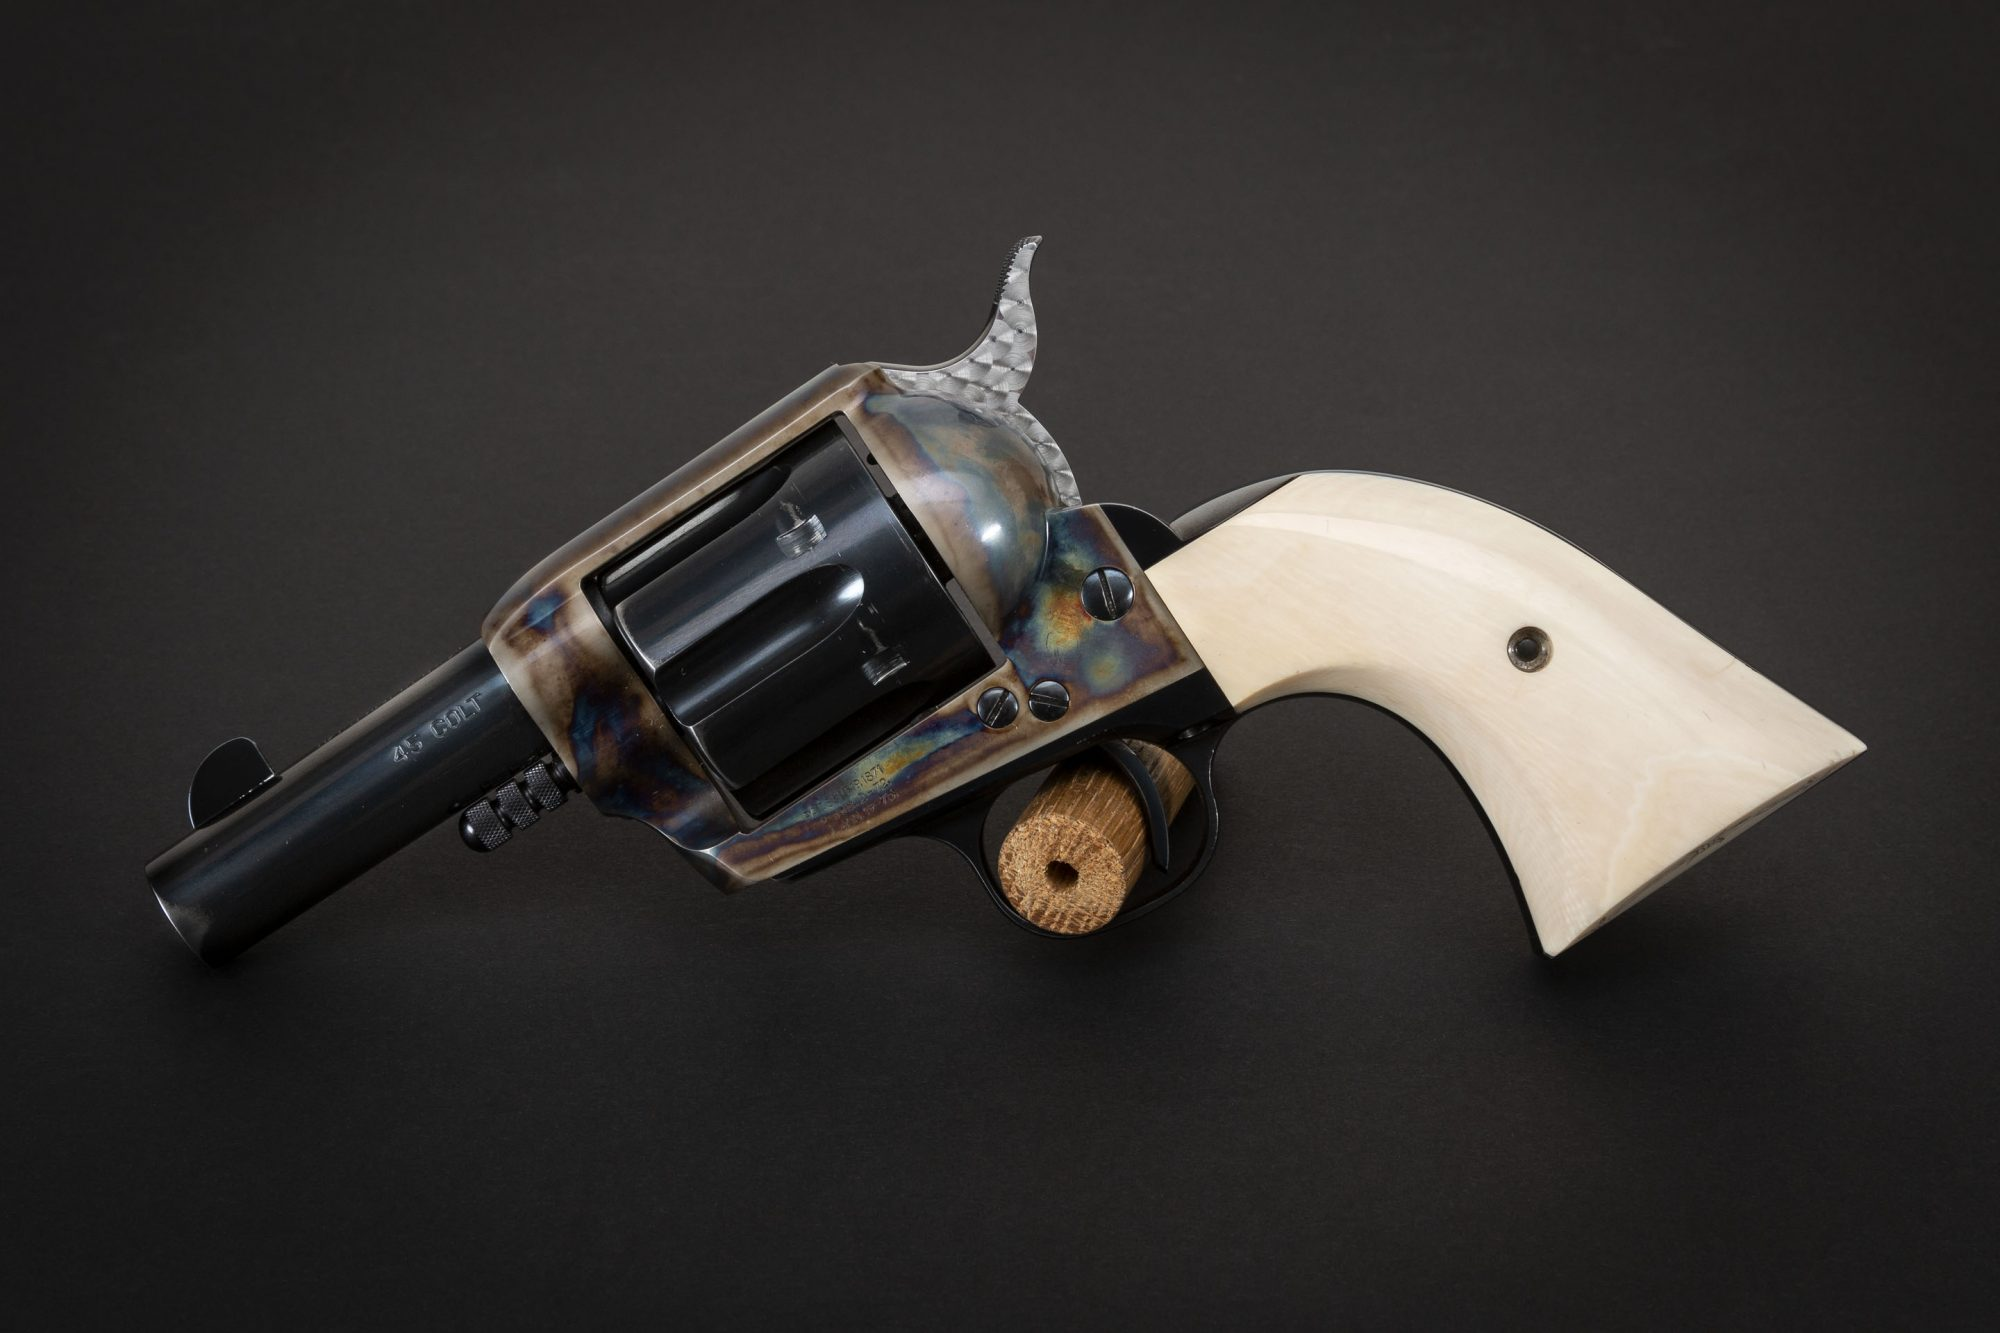 Photo of a U.S. Fire Arms (USFA) Single Action Sheriff Model Revolver featuring bone charcoal color case hardening by Turnbull Restoration of Bloomfield, NY